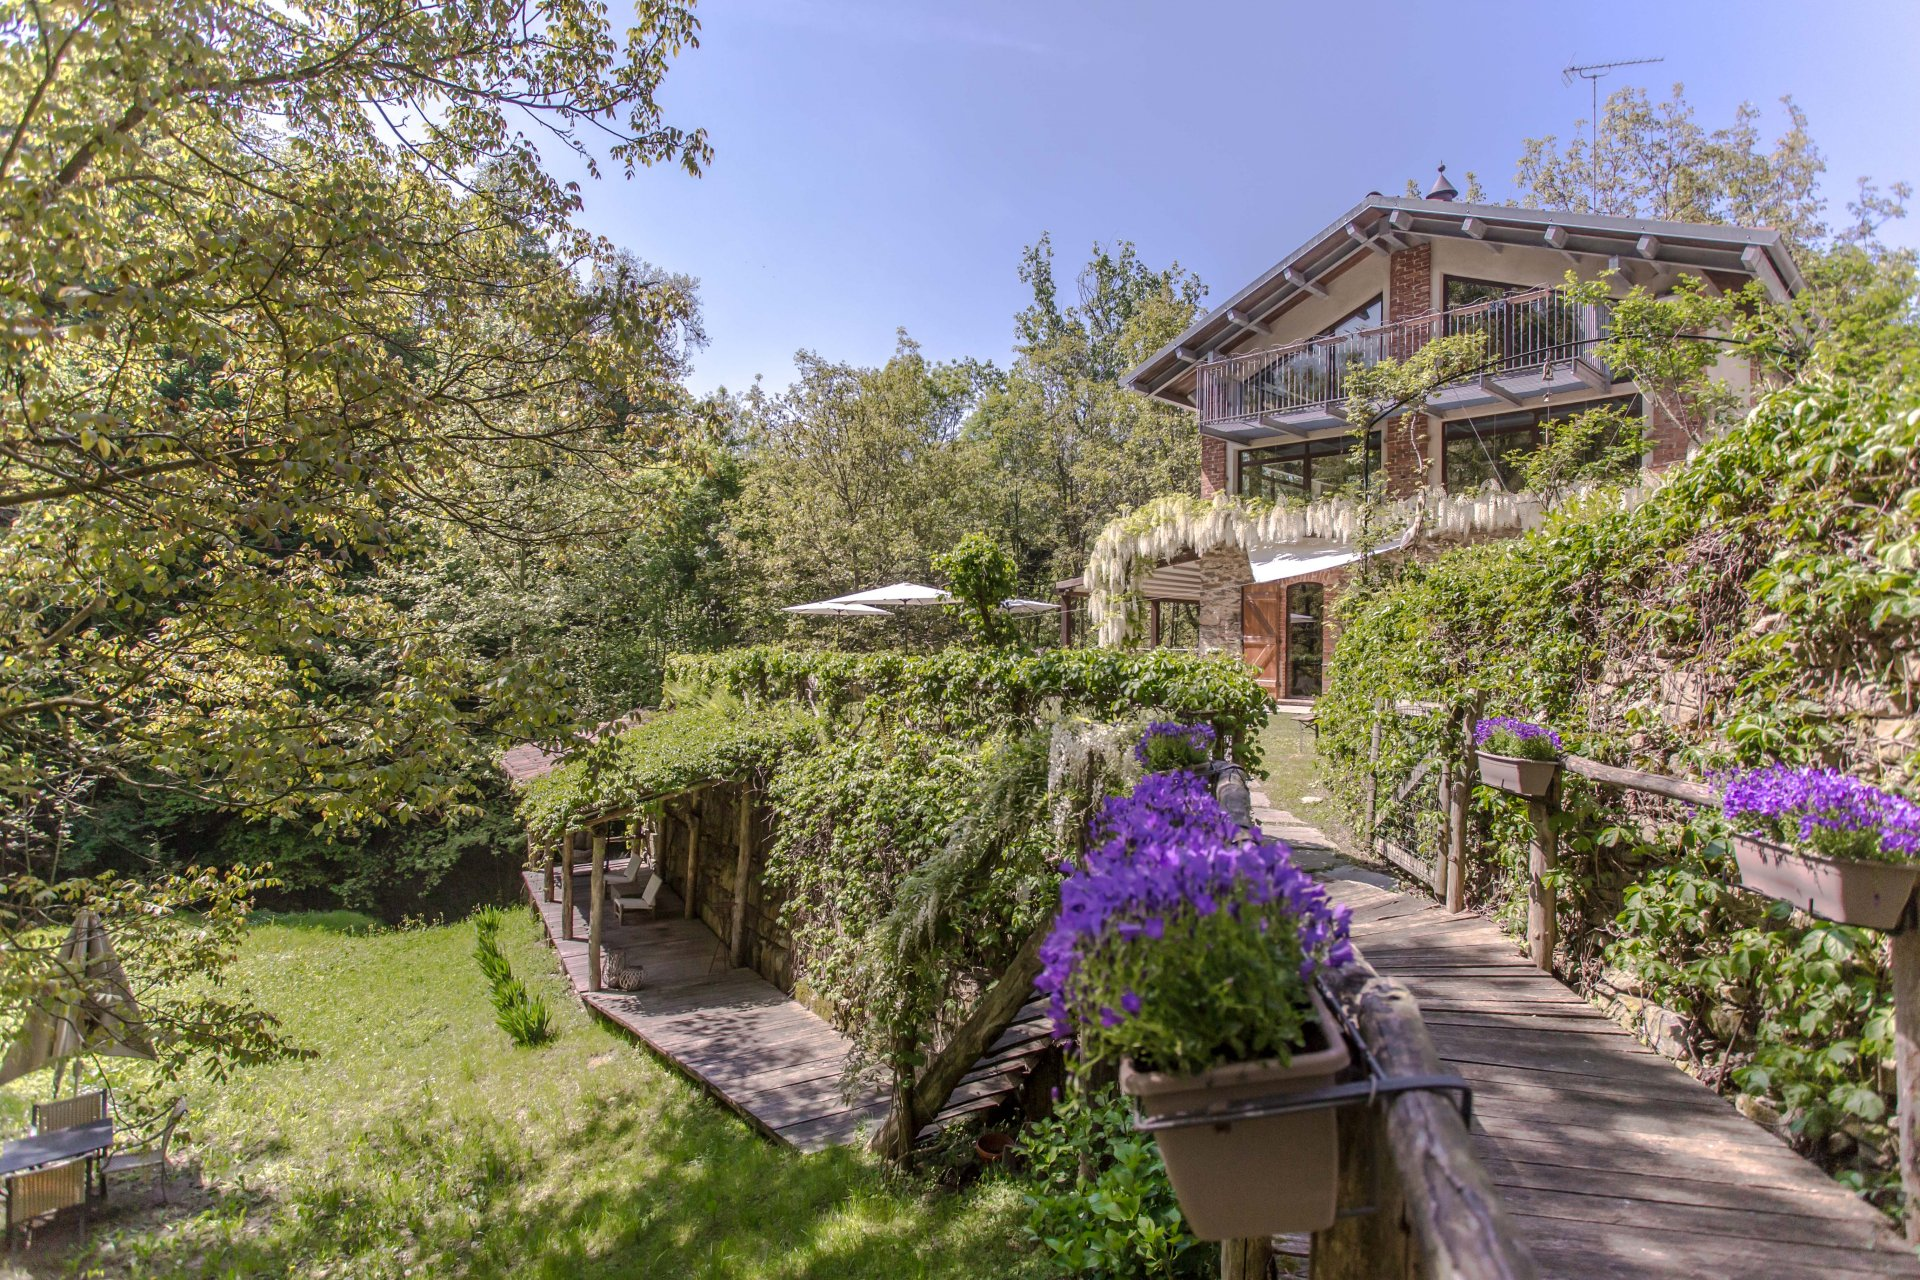 Renovated farmhouse for sale in Pagno, Piedmont